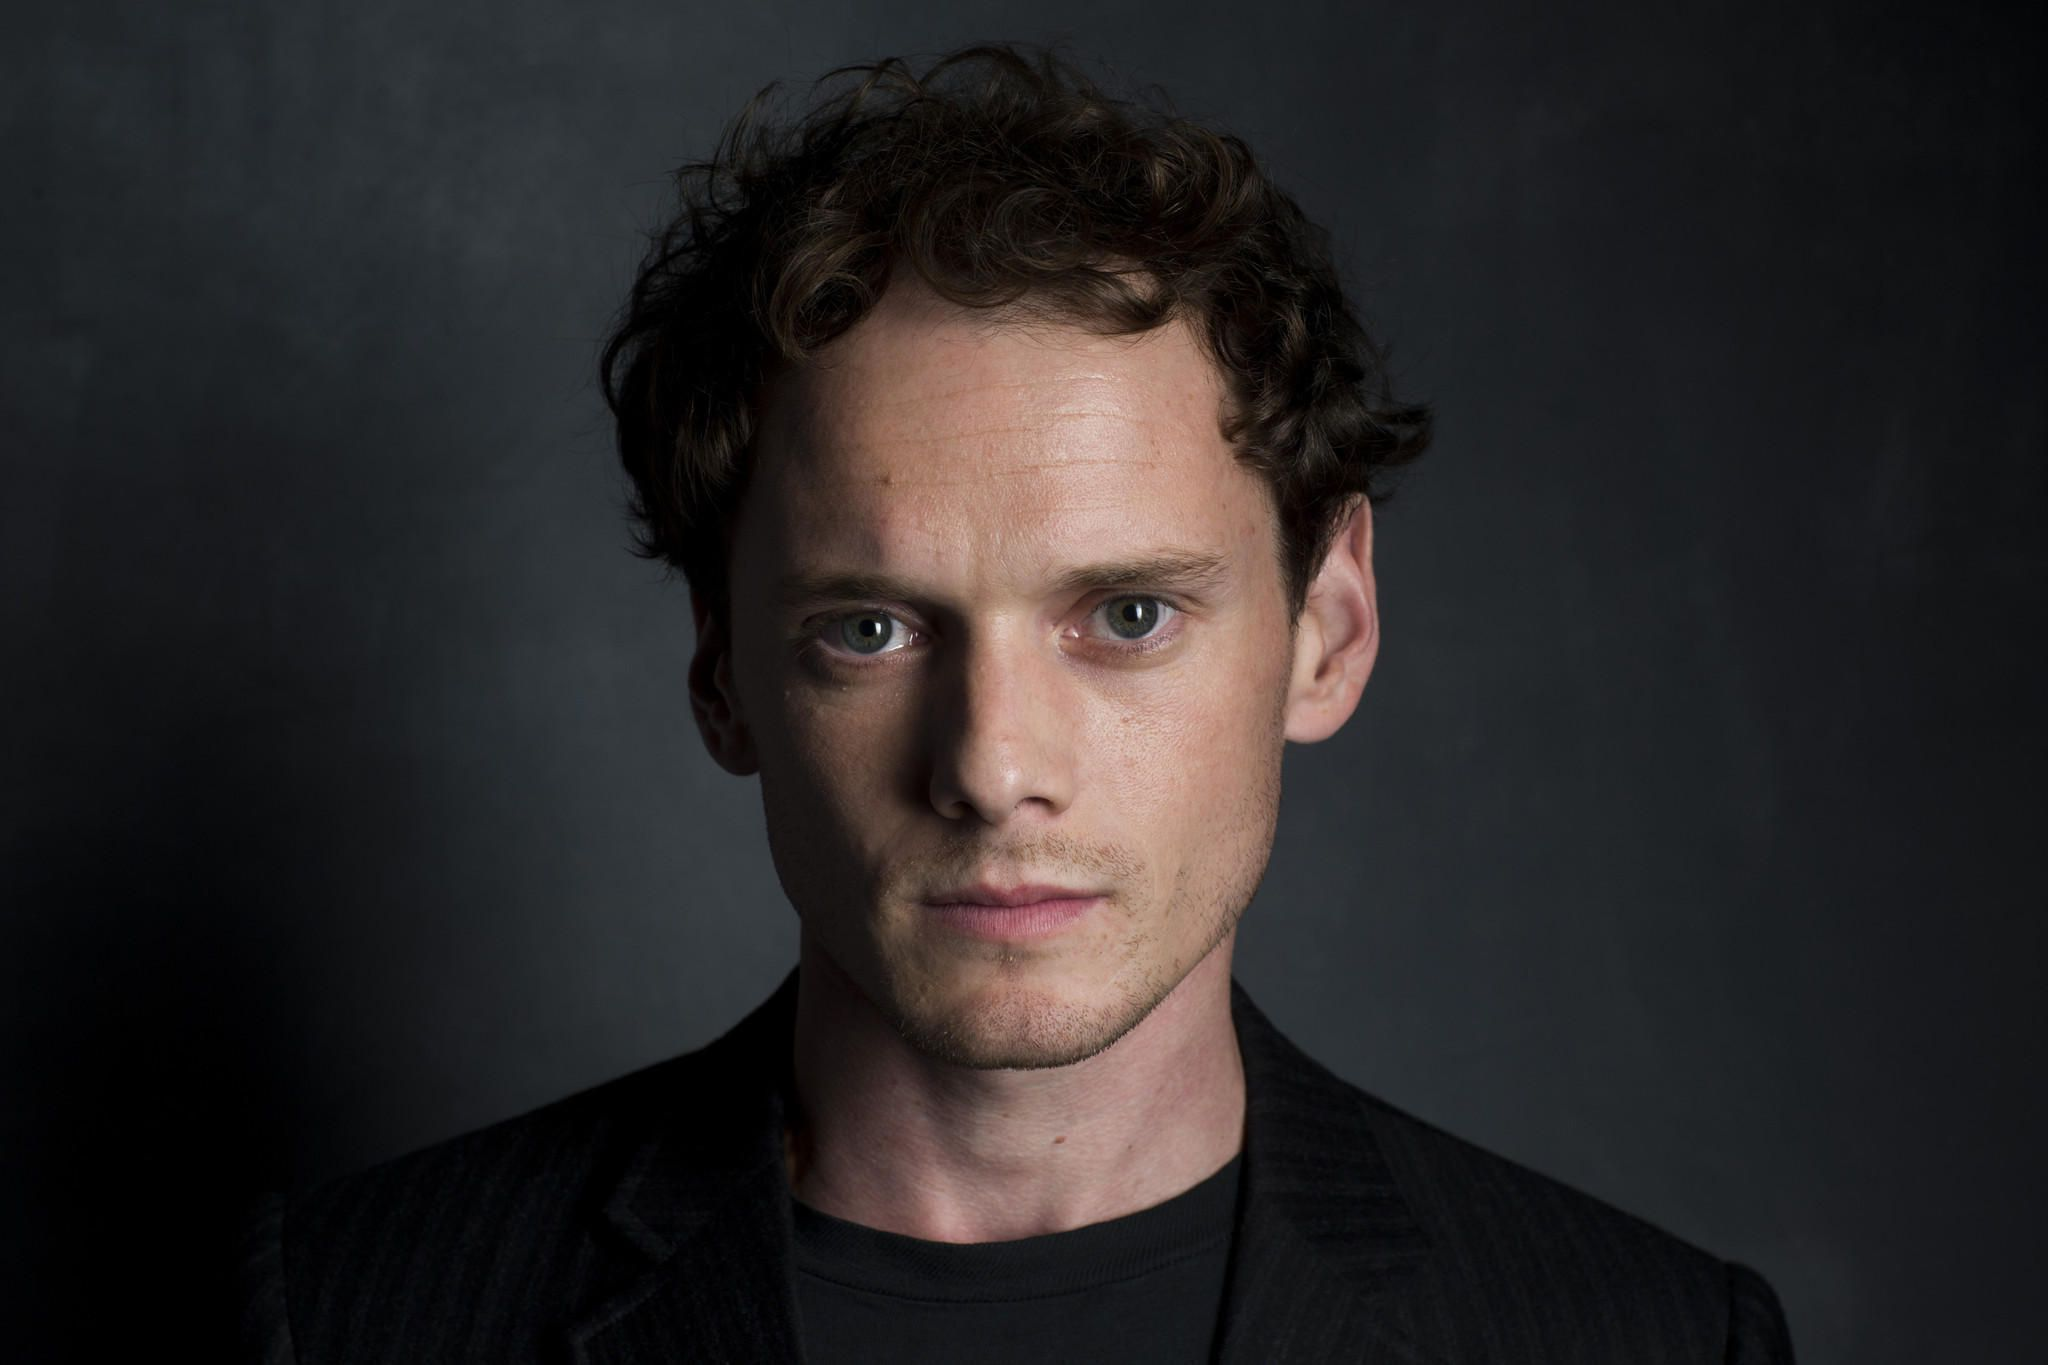 Anton Yelchin Background